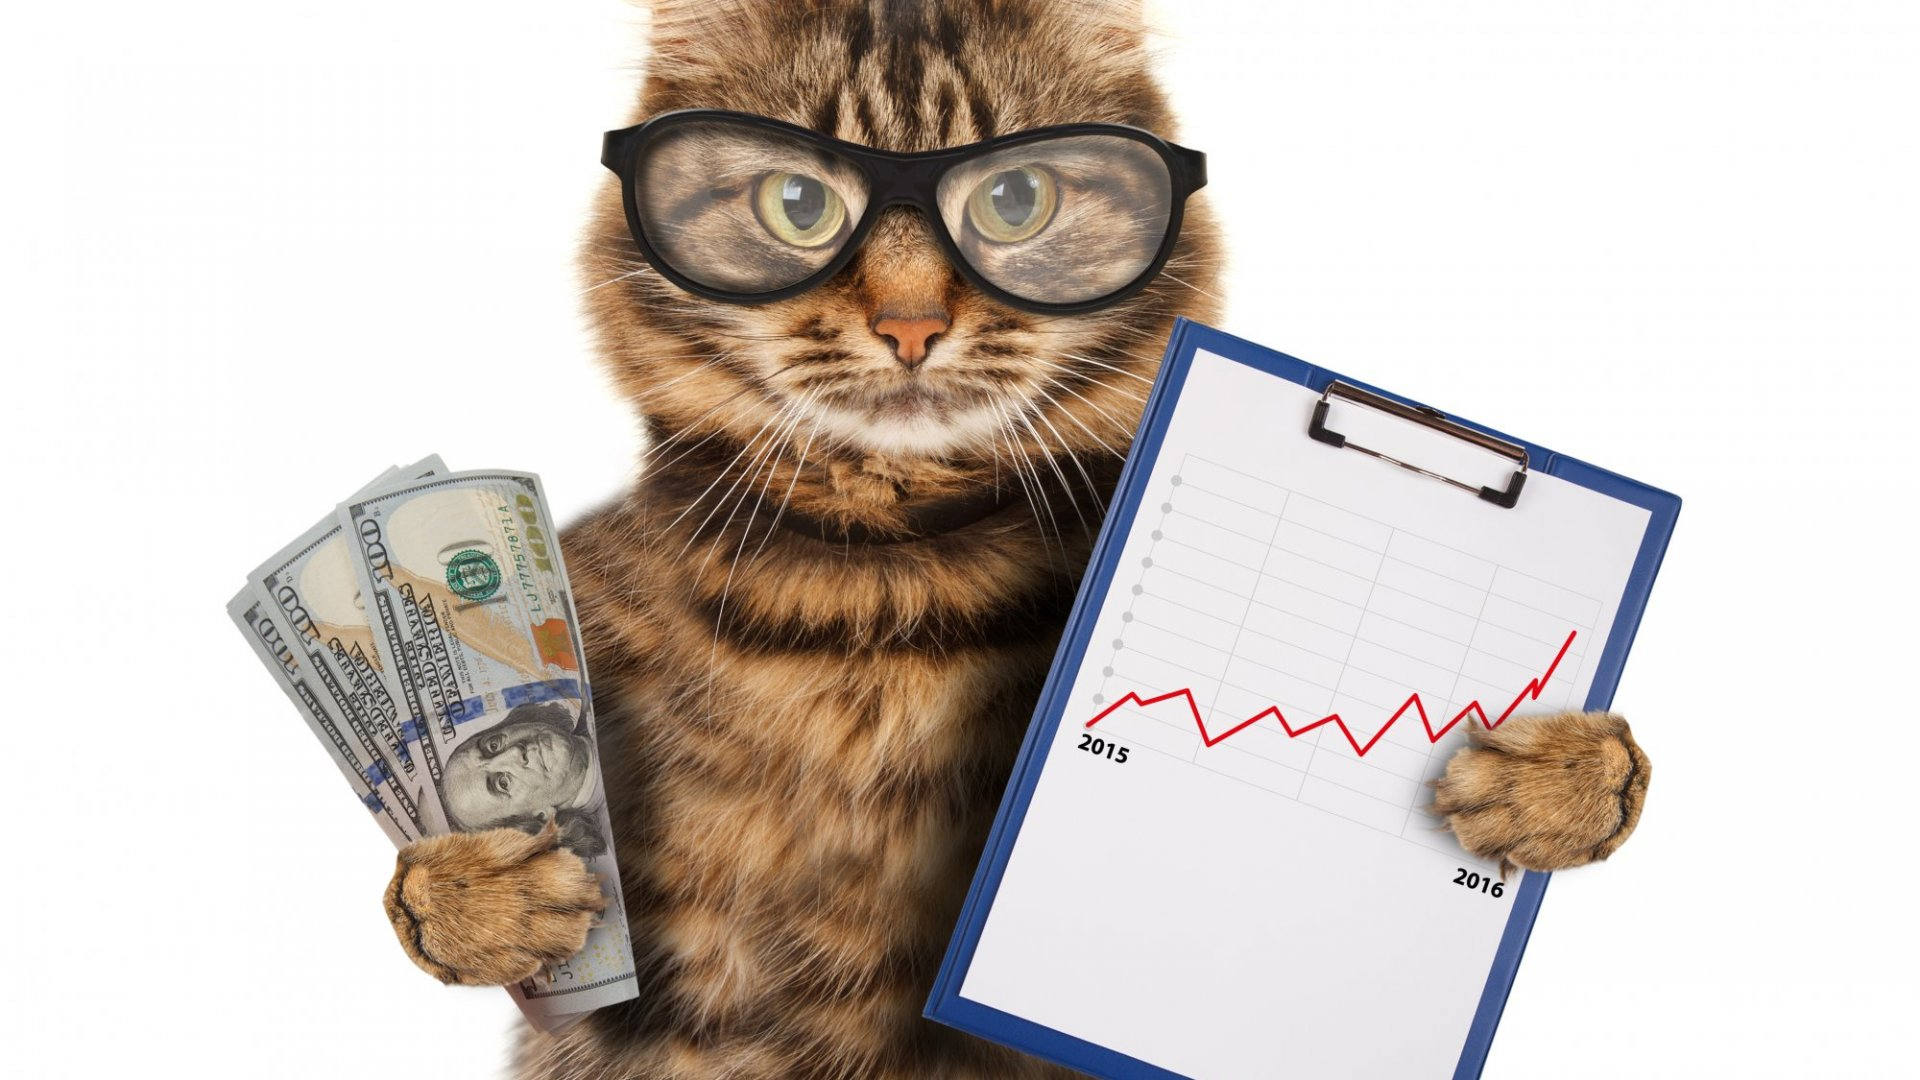 The Return of Animal Spirits and Recruiting New Employees